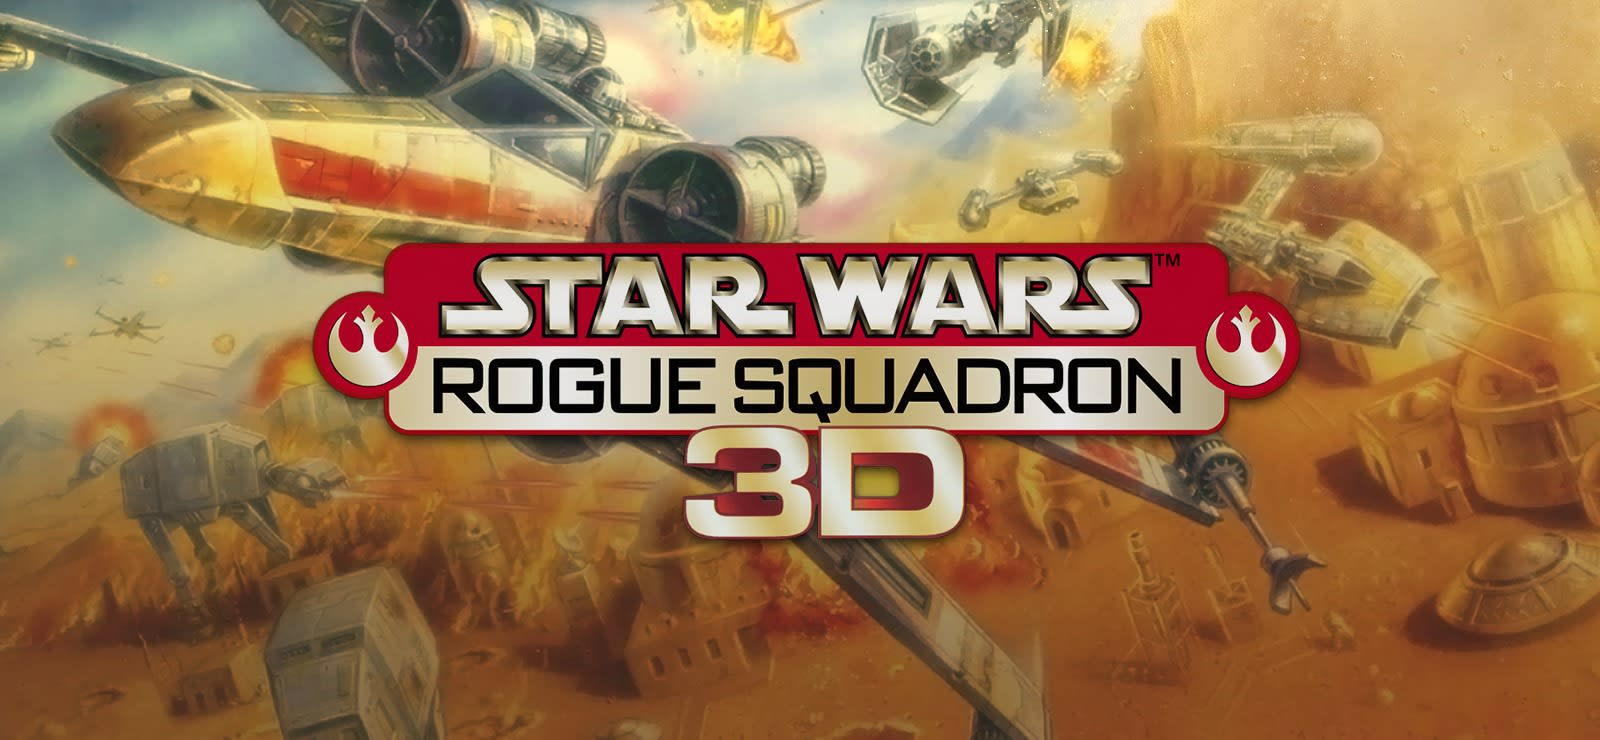 Star Wars: Rogue Squadron 3D varies-with-device